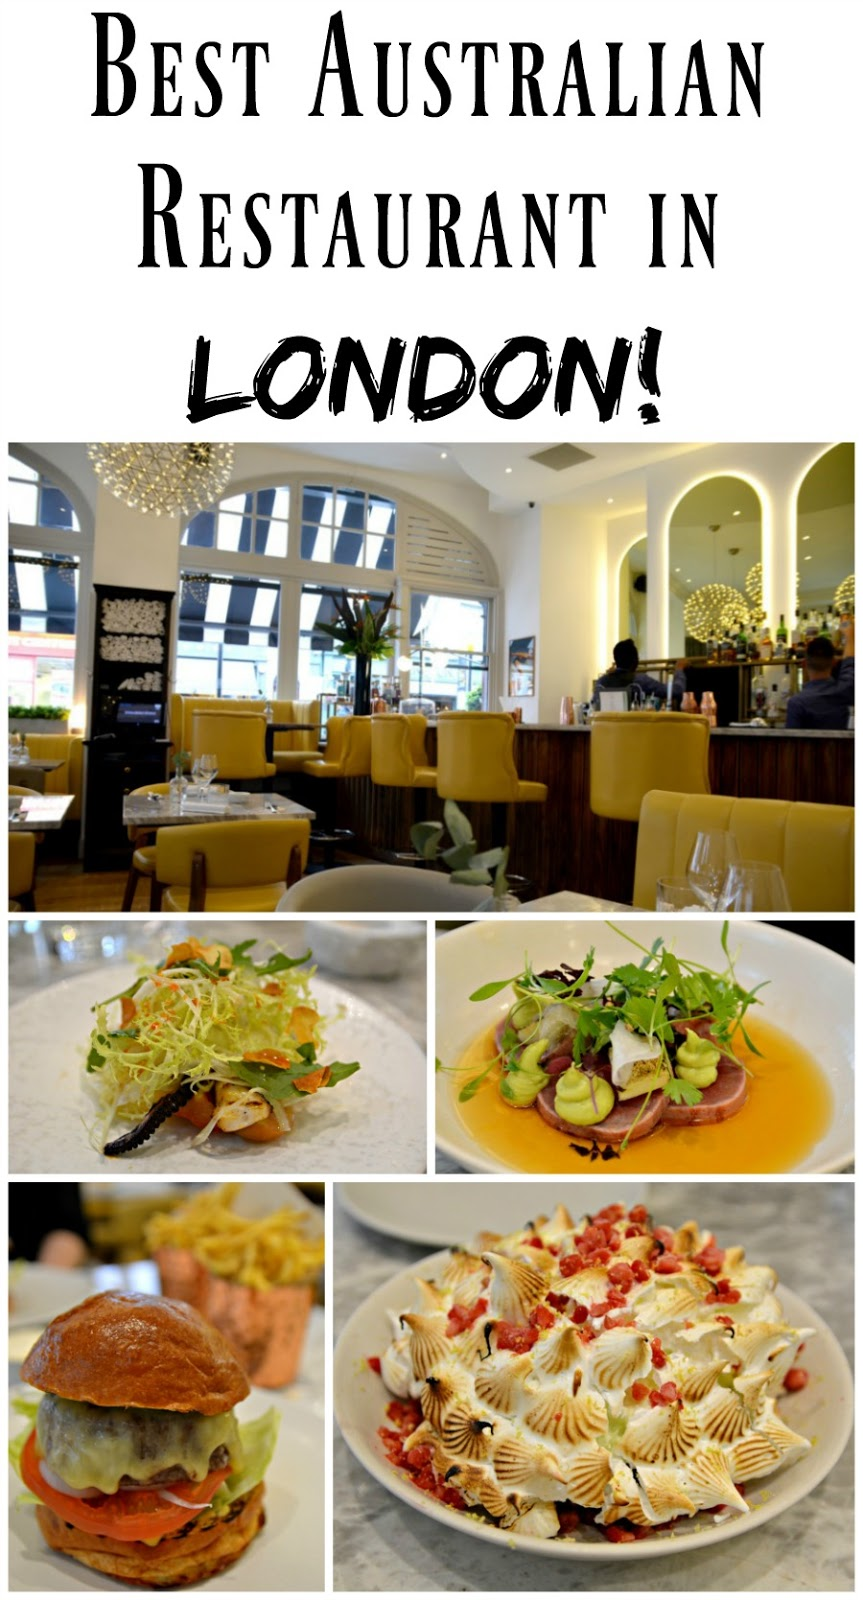 PIN FOR LATER: Hands down one of the BEST Australian restaurants in London! They do chicken salt fries, rib burgers, great seafood options, kangaroo tartare, AND pavlova and lamingtons!